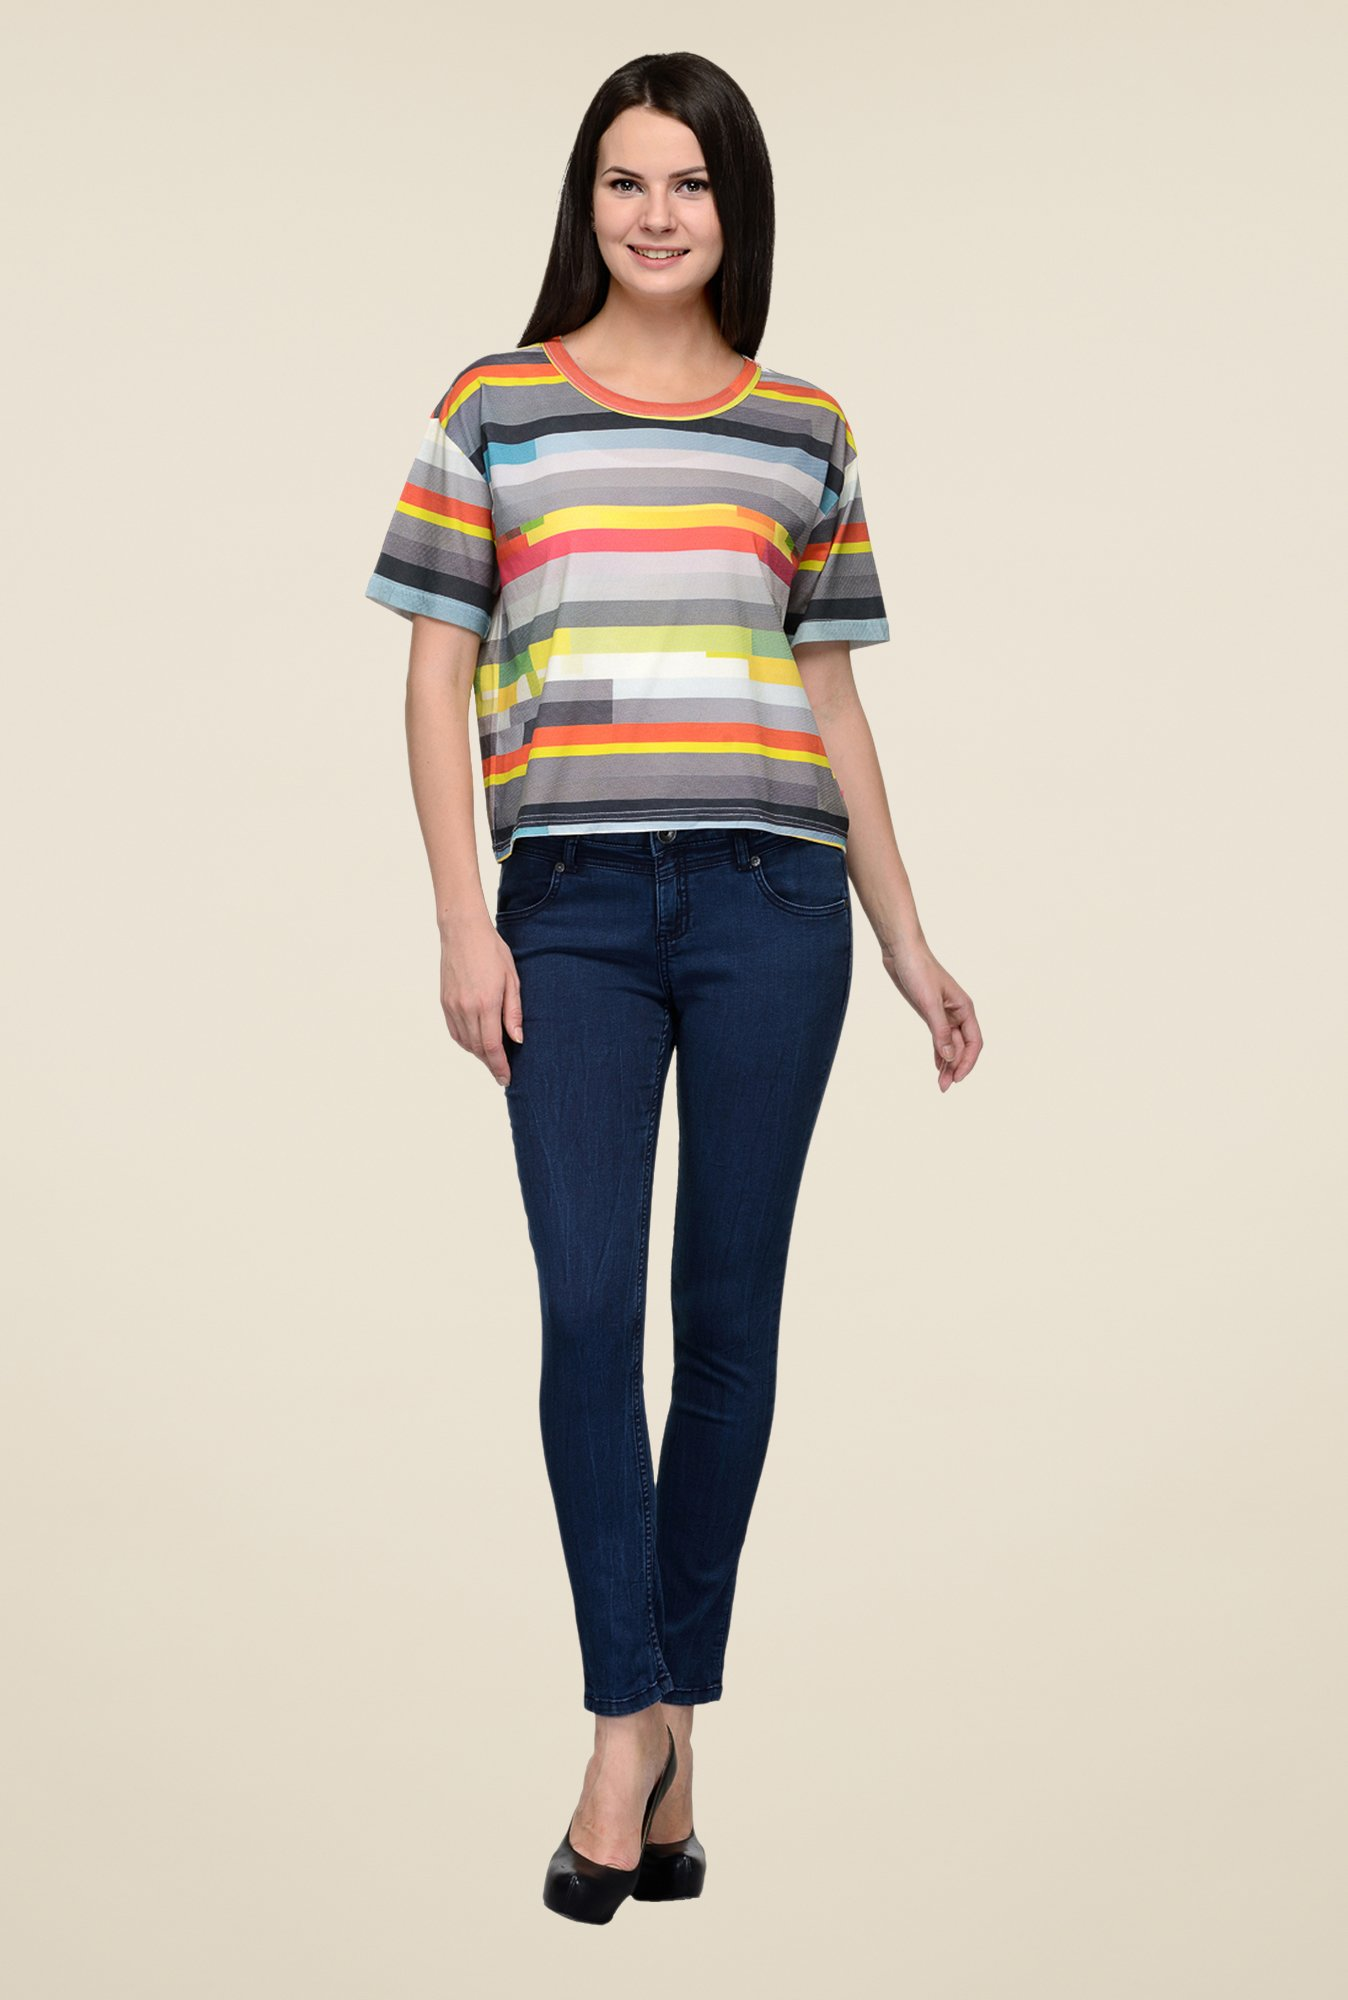 United Colors of Benetton Multicolor Striped T-shirt